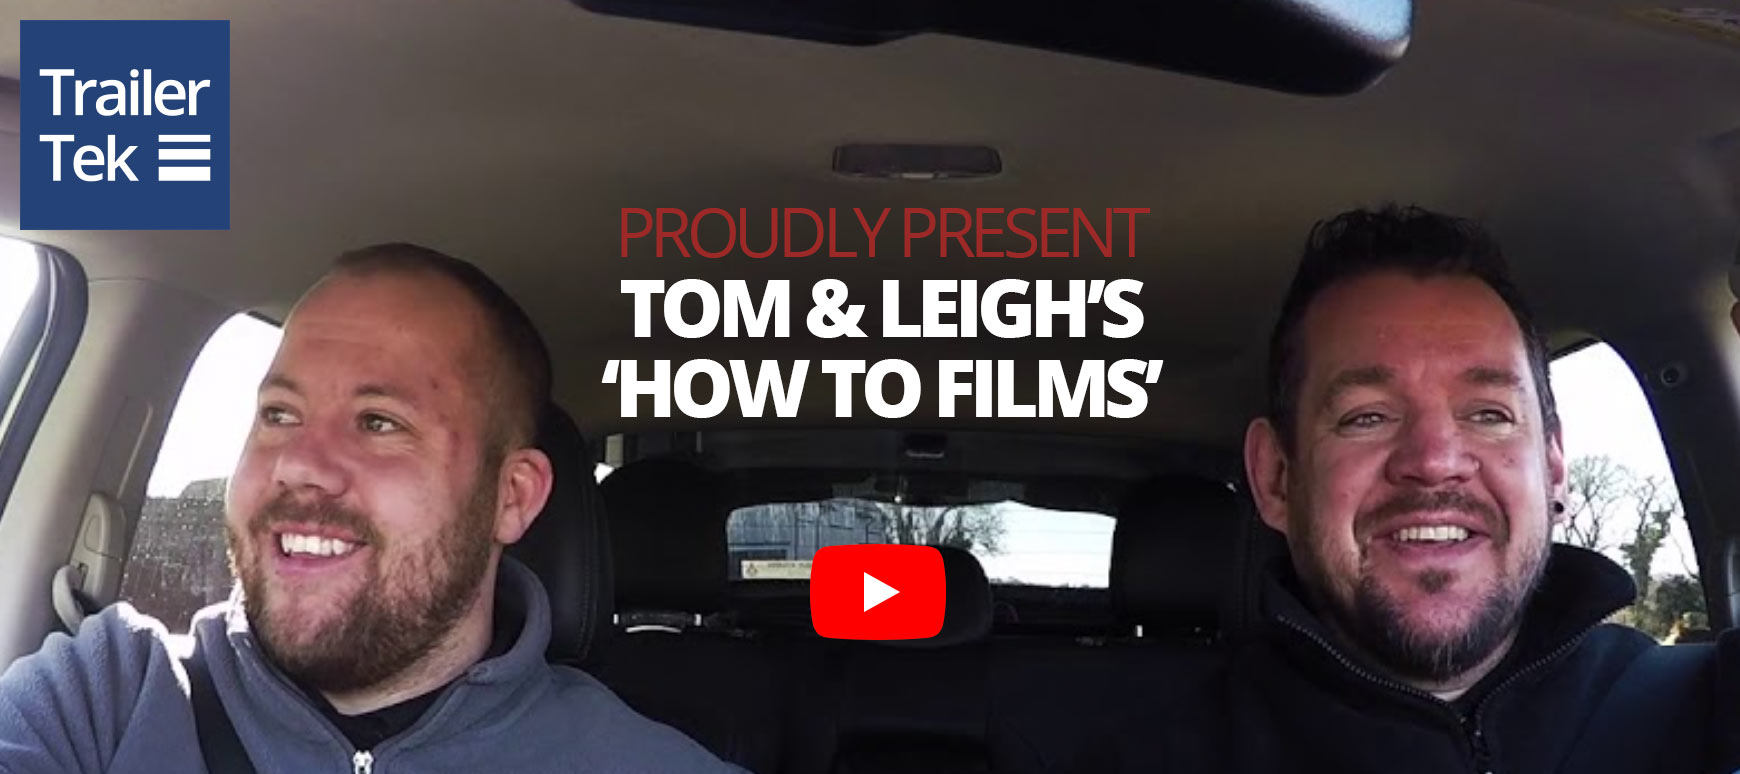 Tom & Leigh's How To Films